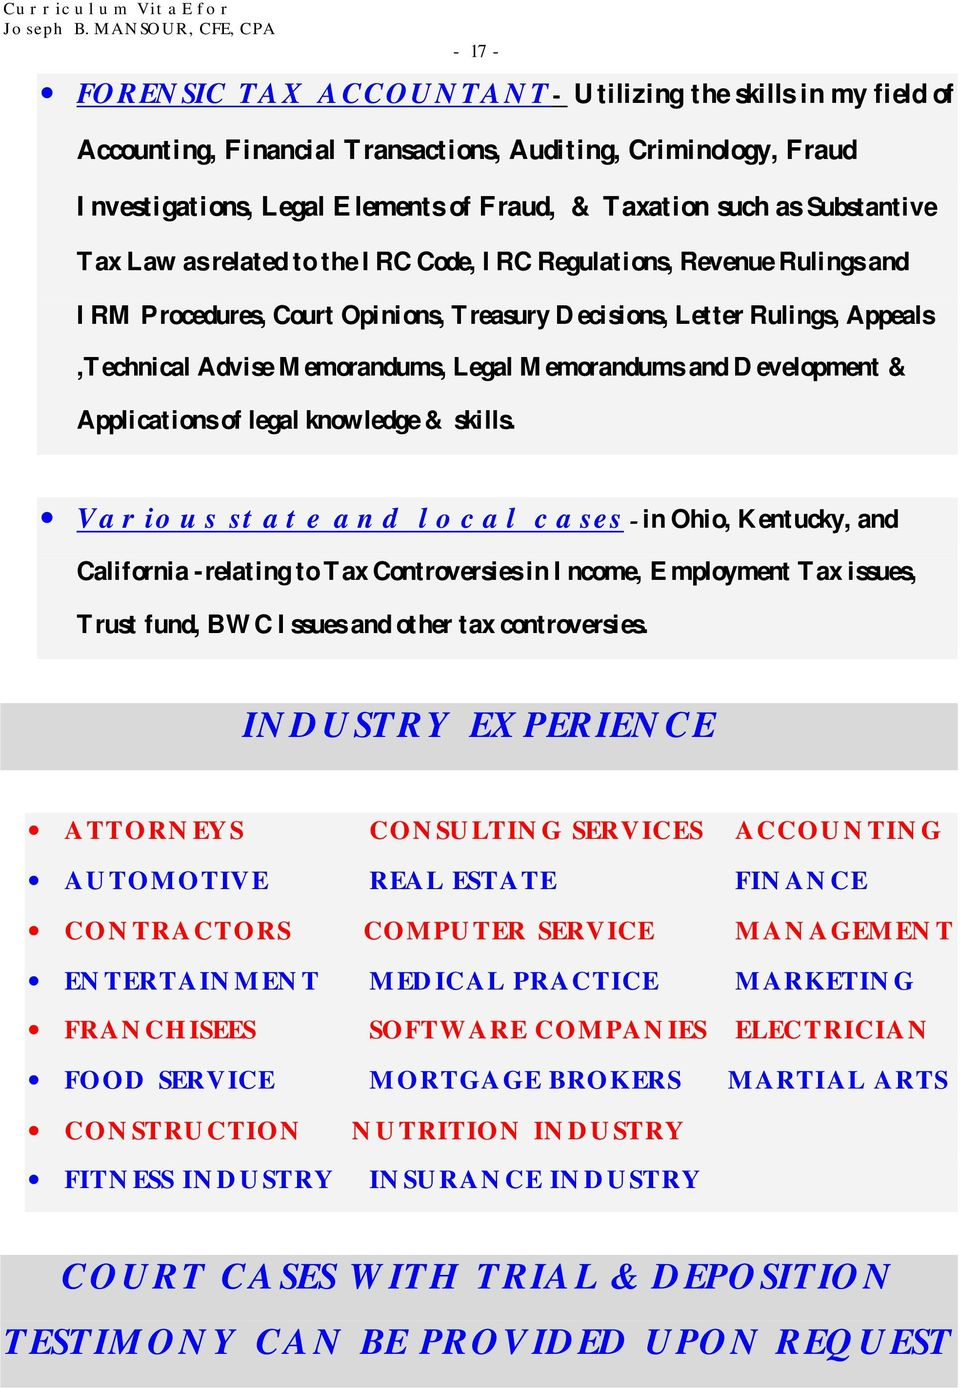 Memorandums and Development & Applications of legal knowledge & skills.